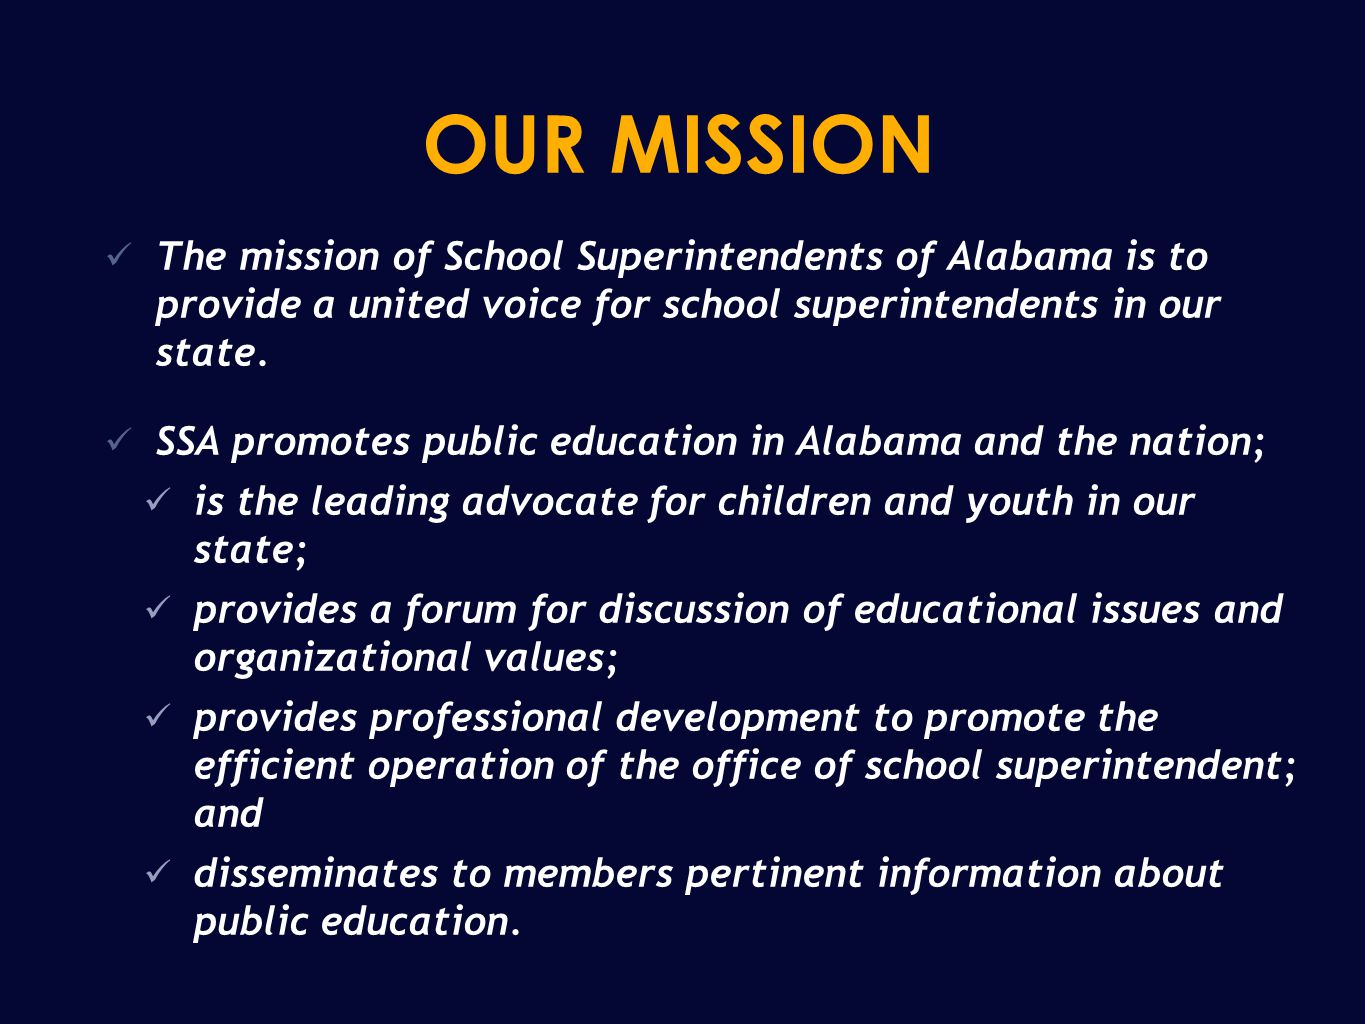 OUR MISSION The mission of School Superintendents of Alabama is to provide a united voice for school superintendents in our state.